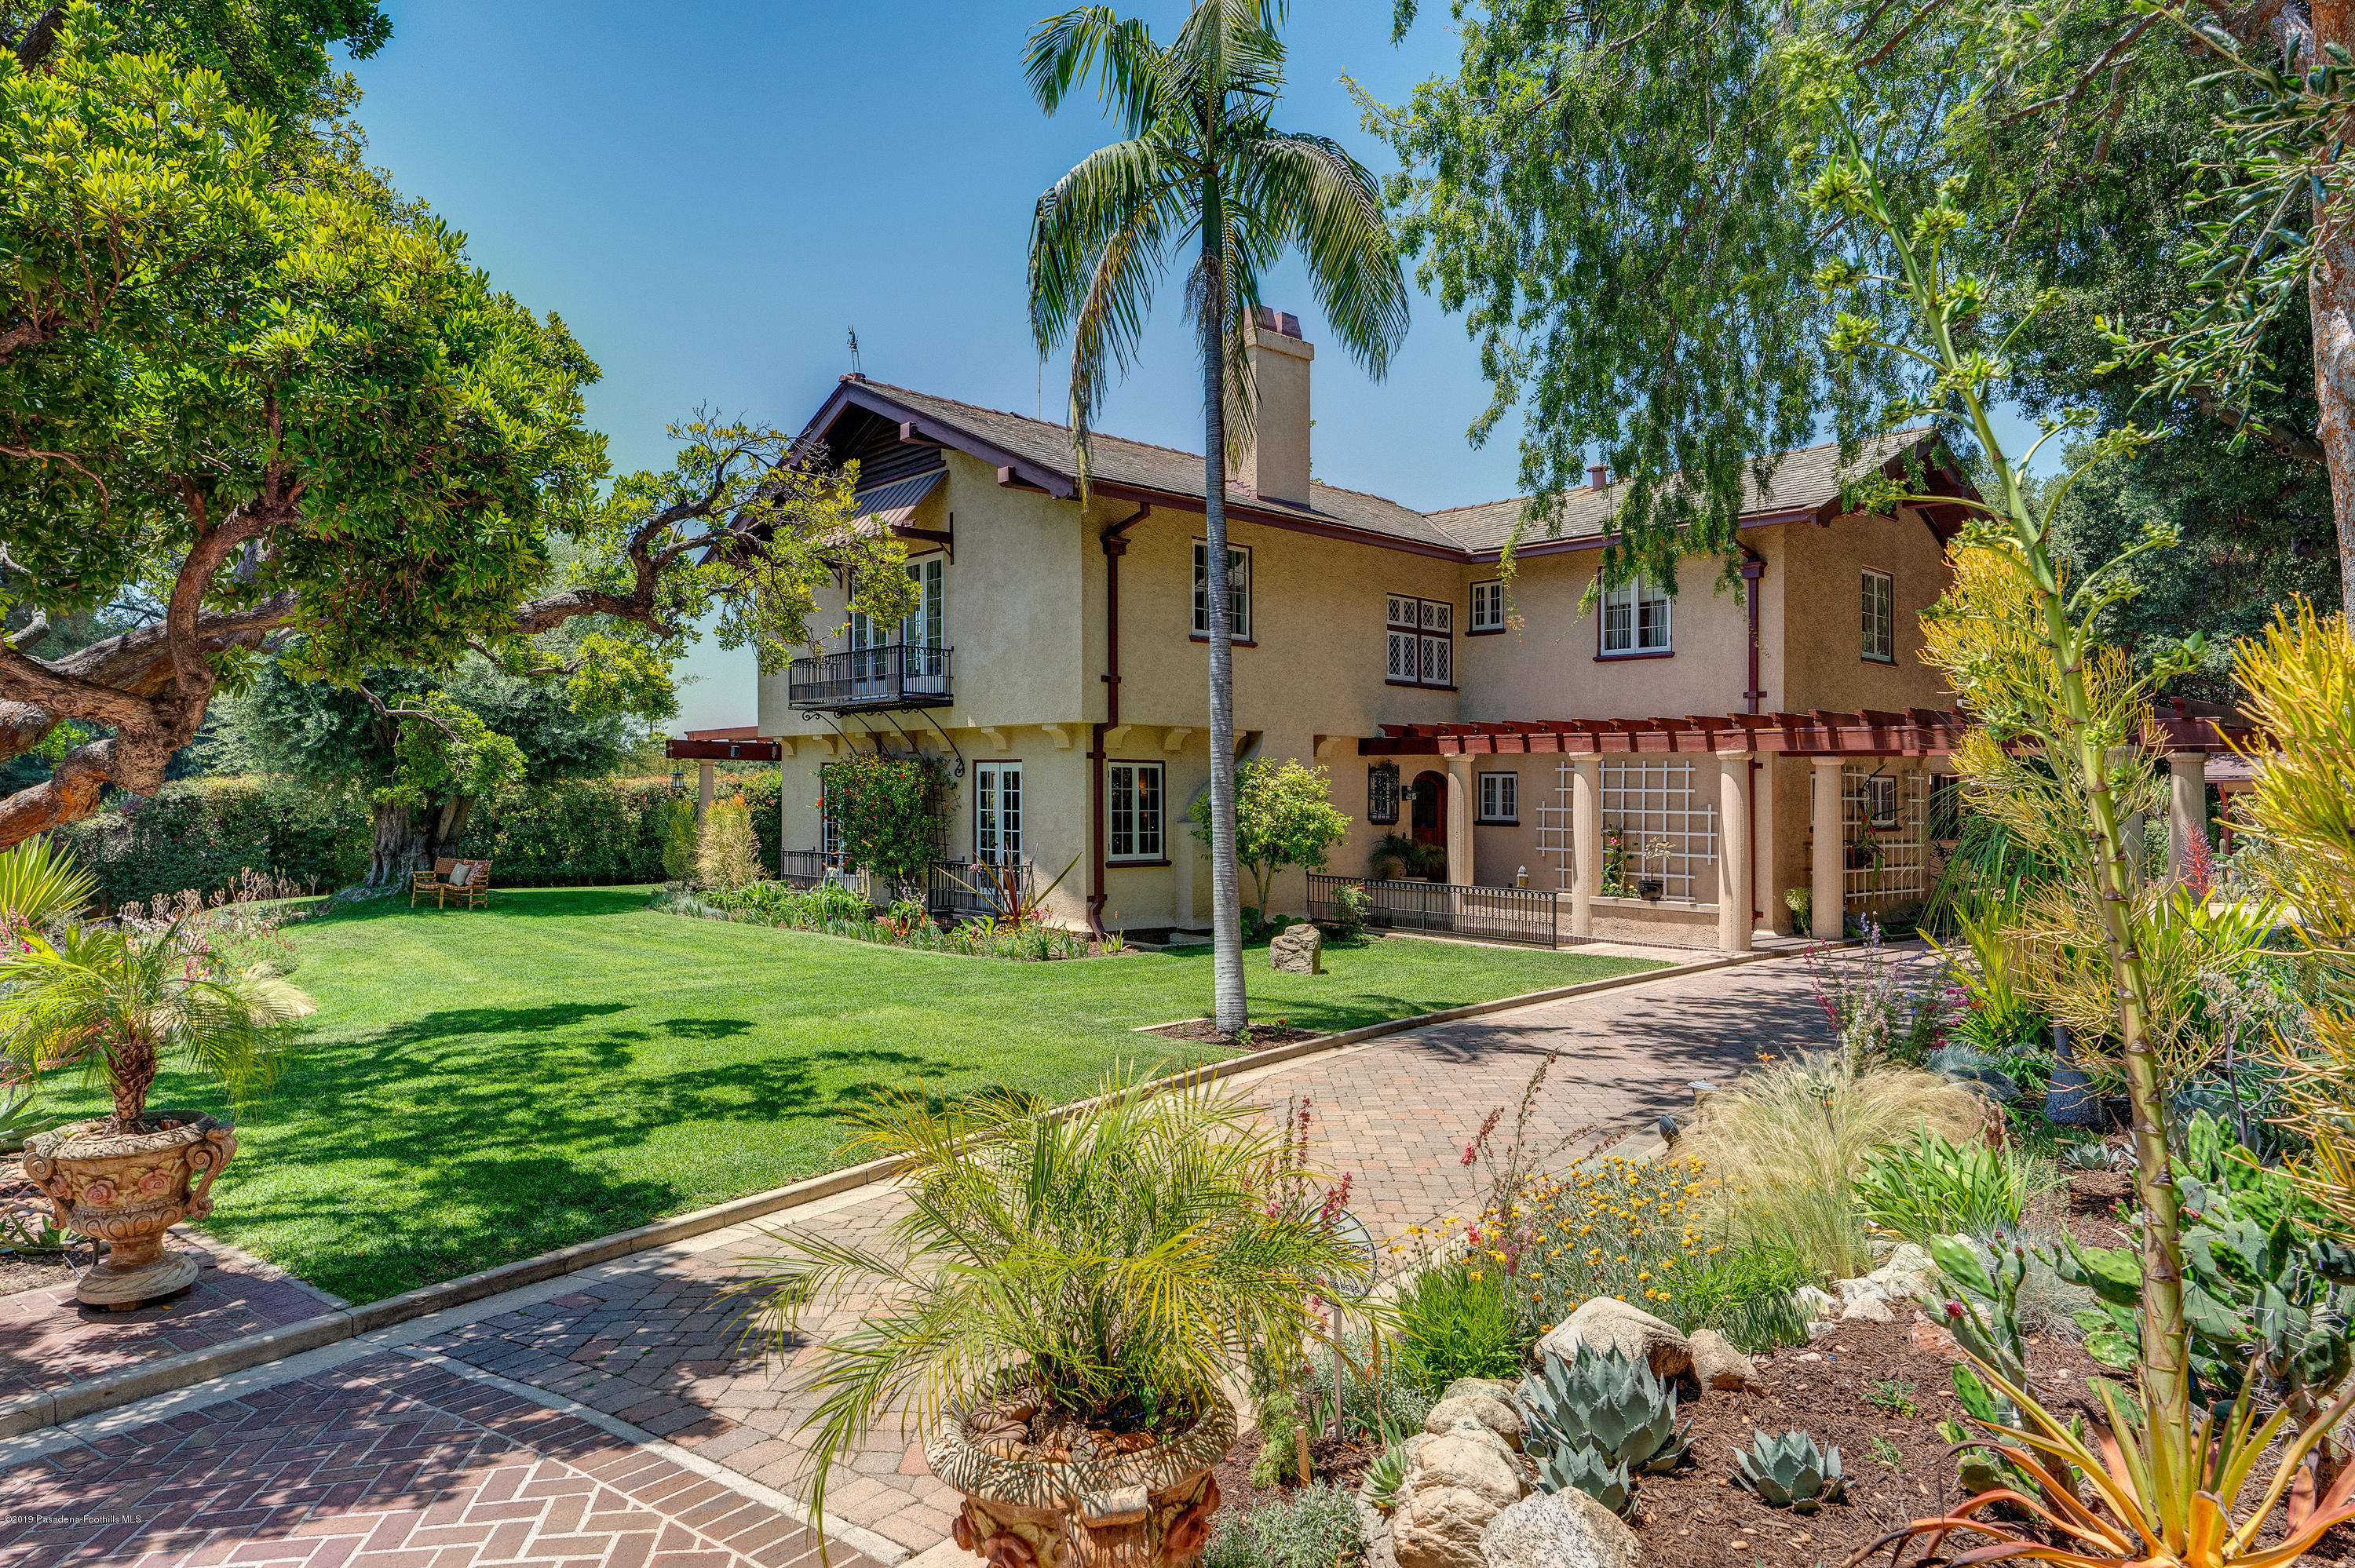 2709 Visscher Place, Altadena, California